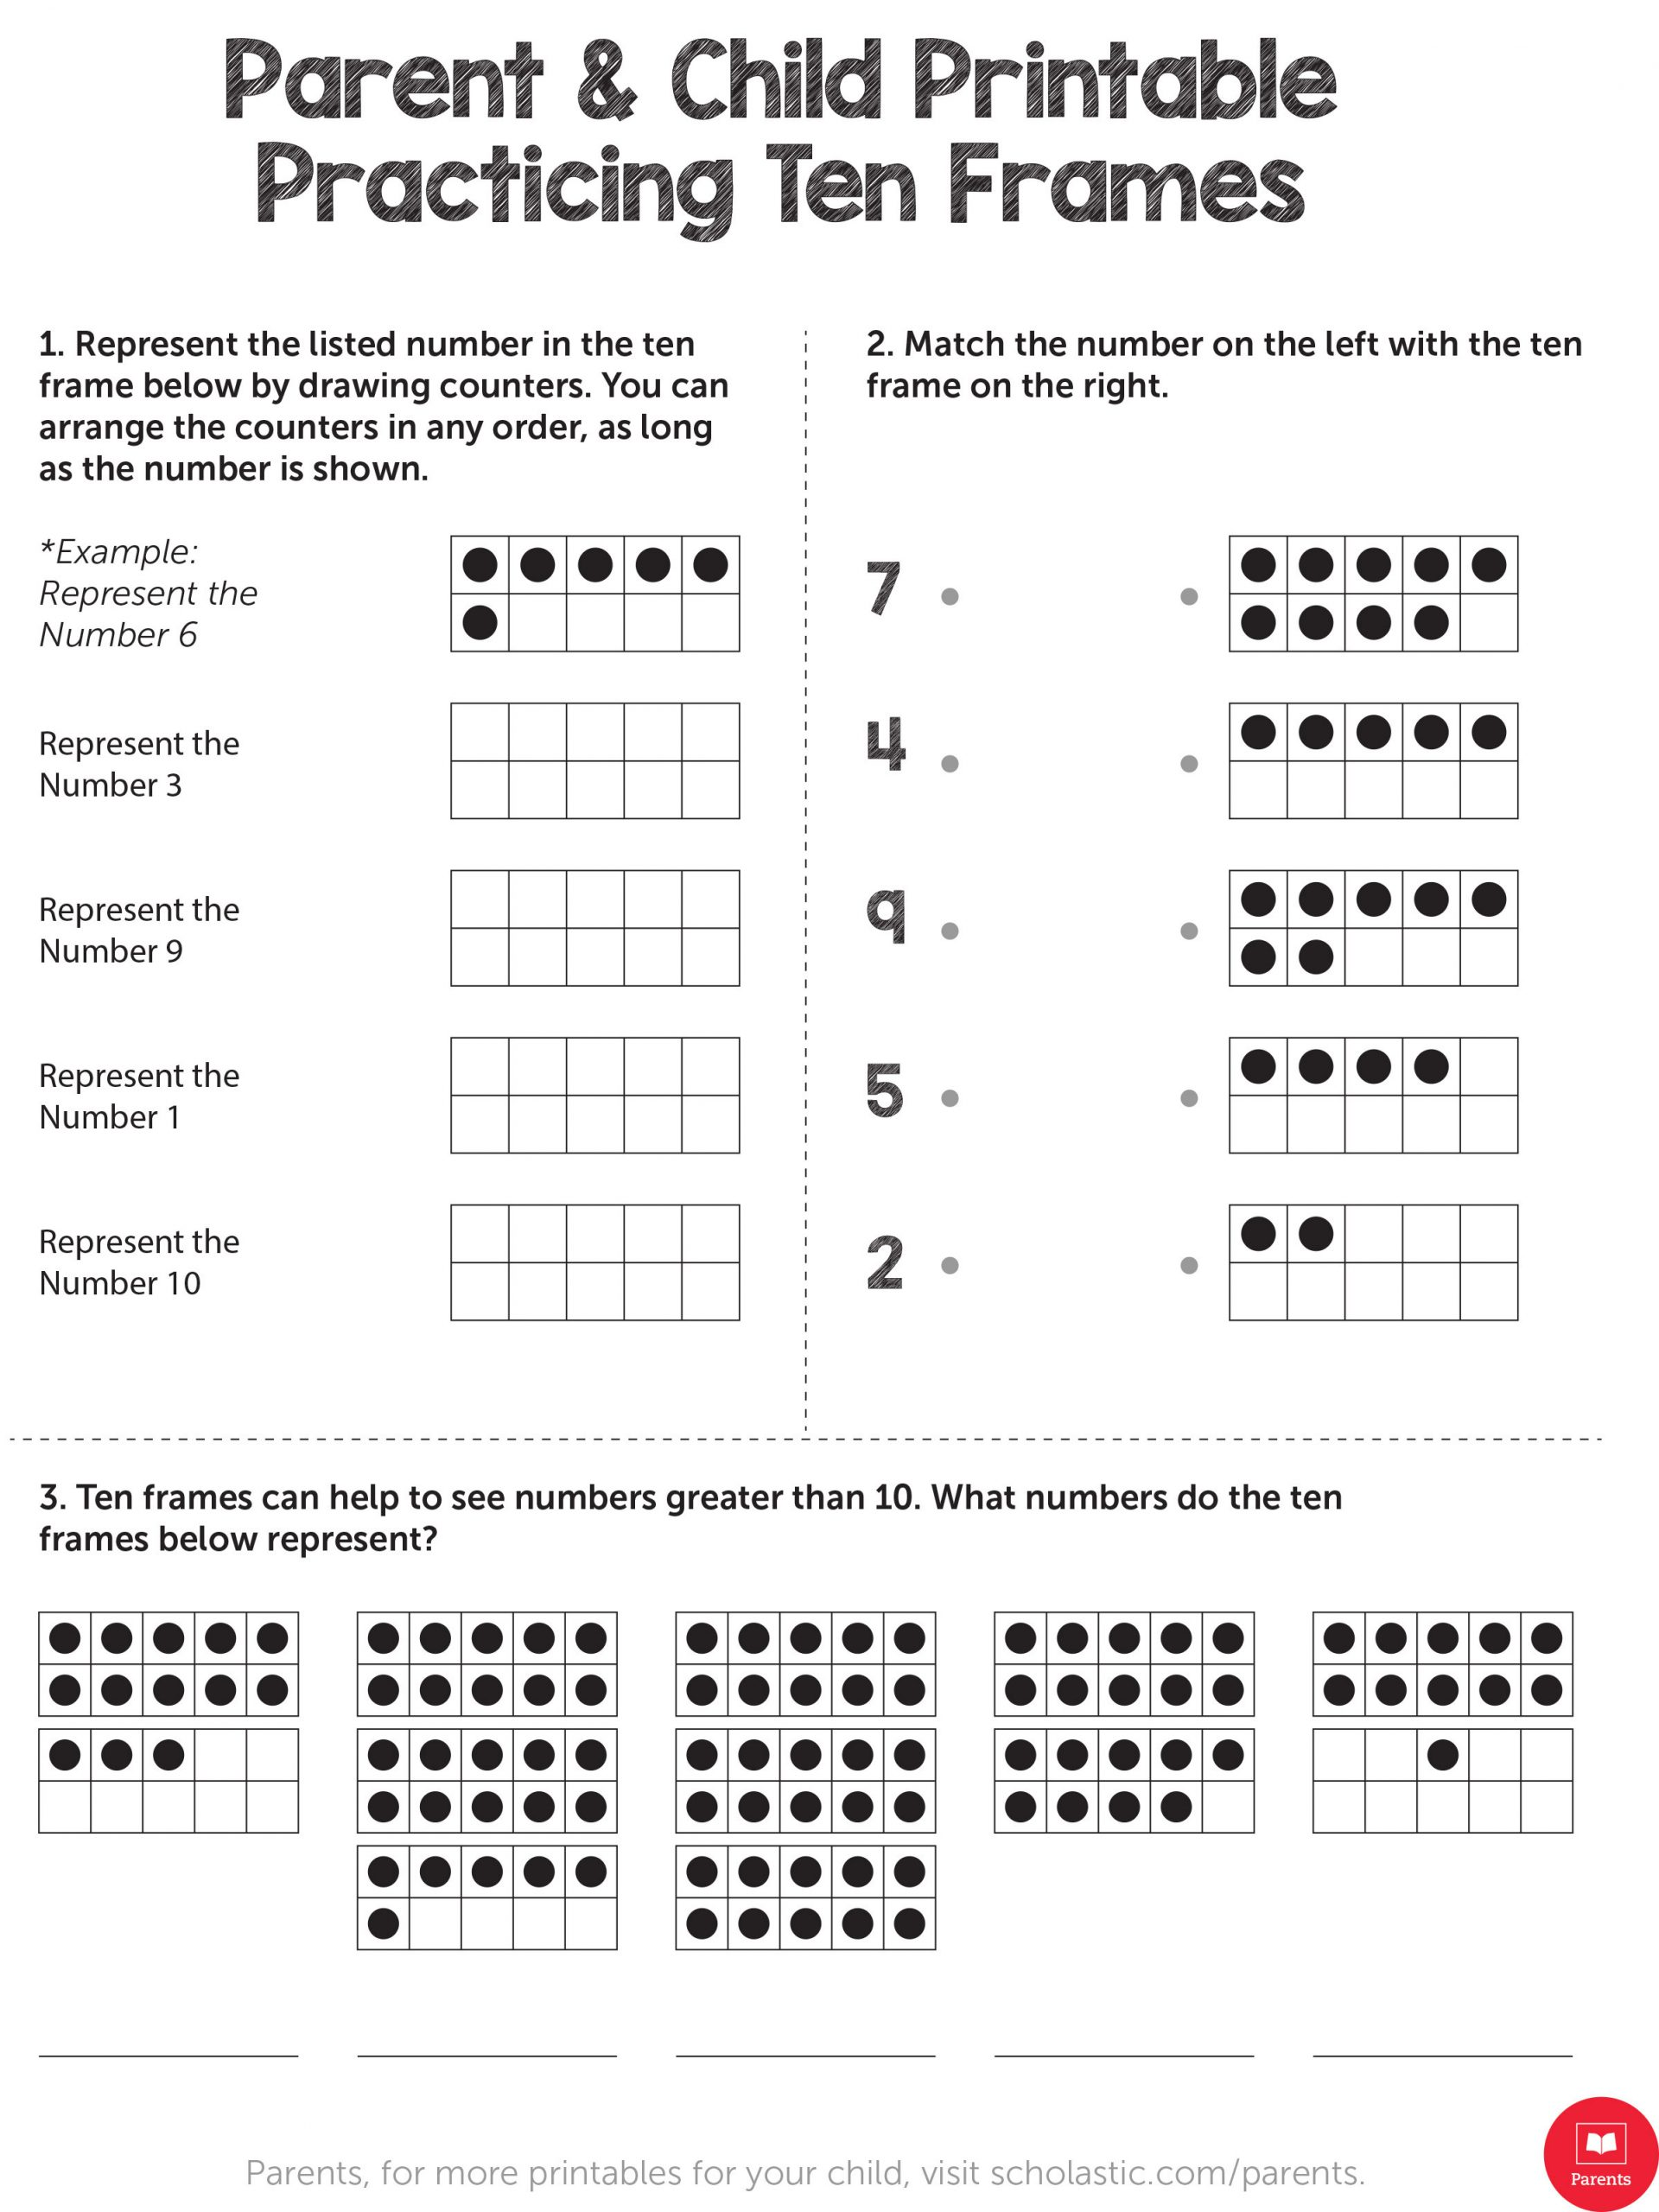 Ten Frame Math Worksheets Learn Your Child S Math with This Ten Frame Printable